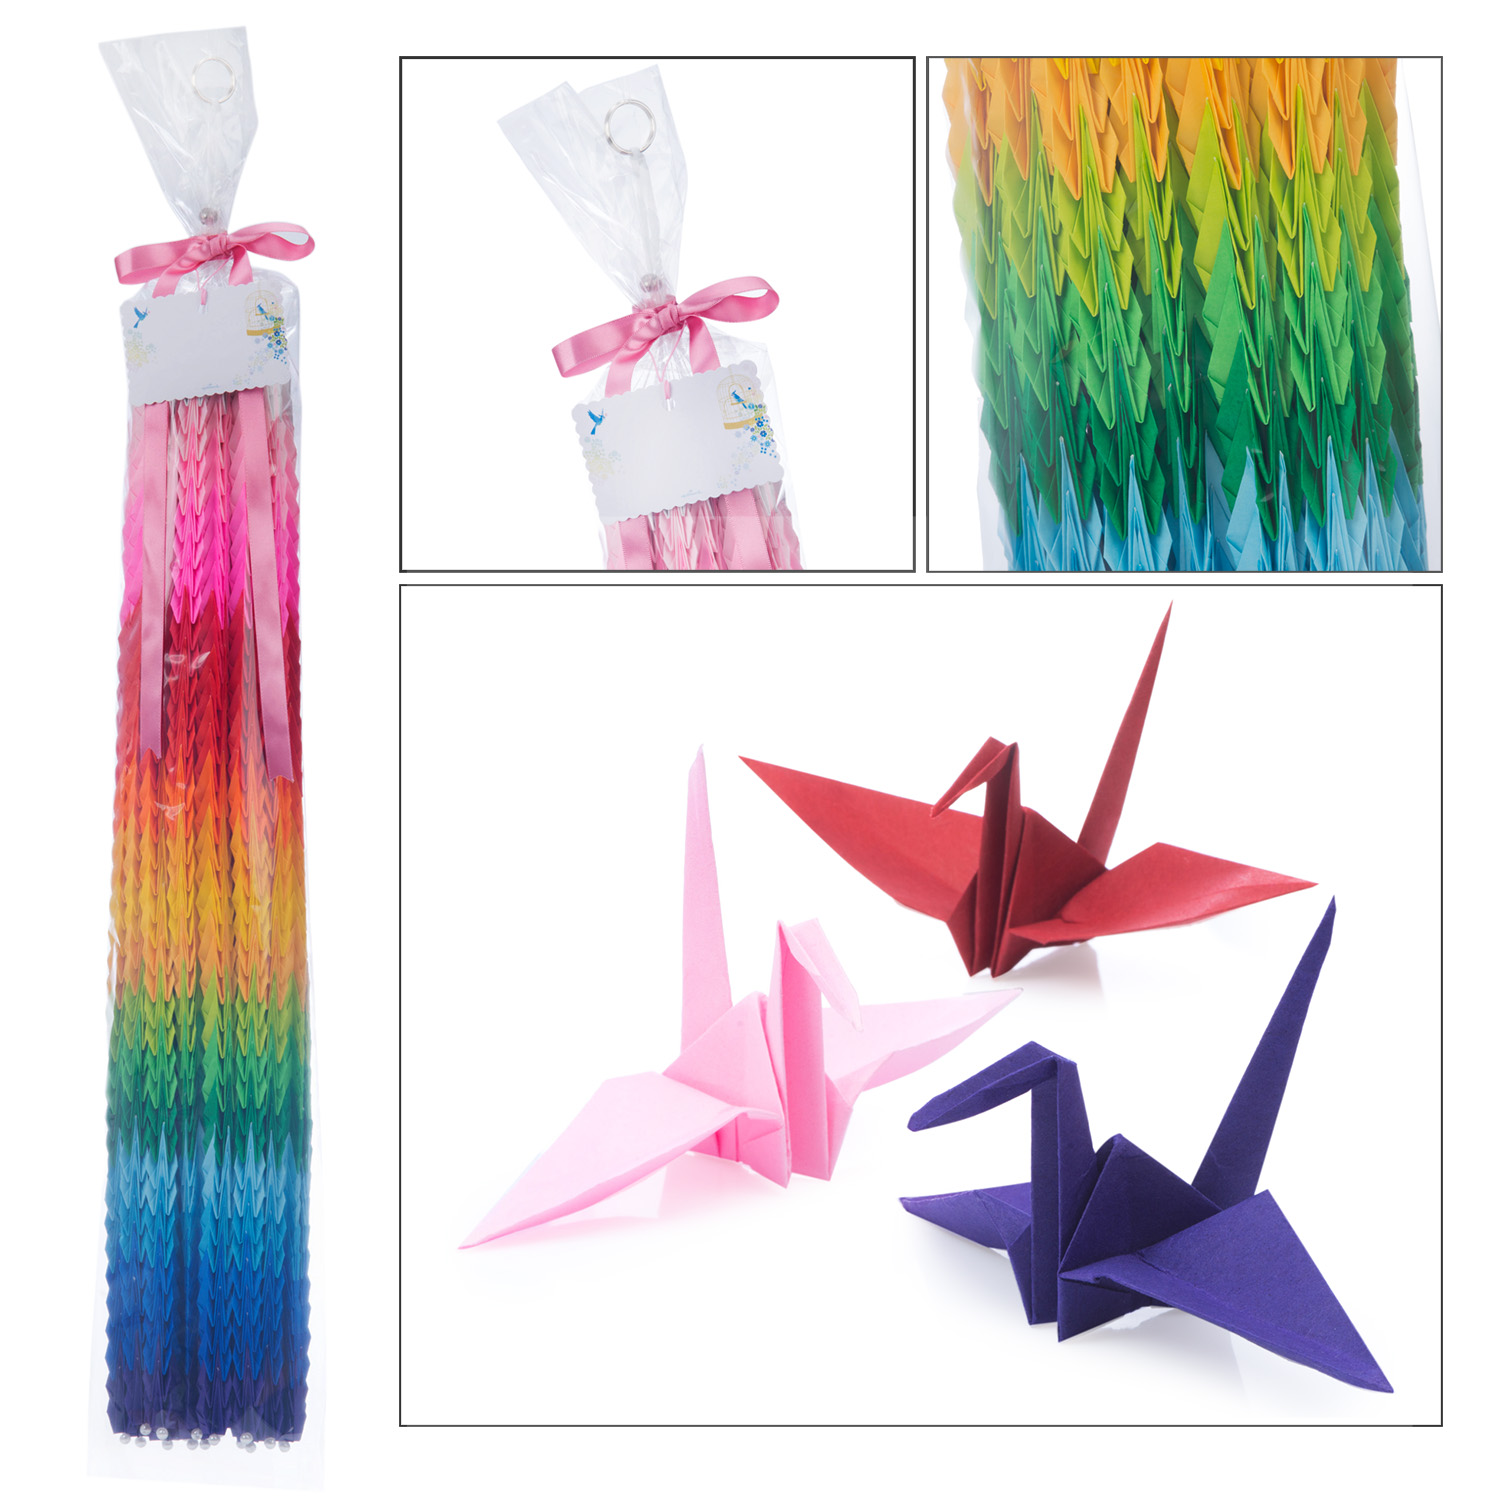 paper cranes for sale Plain paper & envelopes paper envelopes sale stationery home stationery items 1-9 of 1127 page you're currently reading page 1 page 2 page 3.